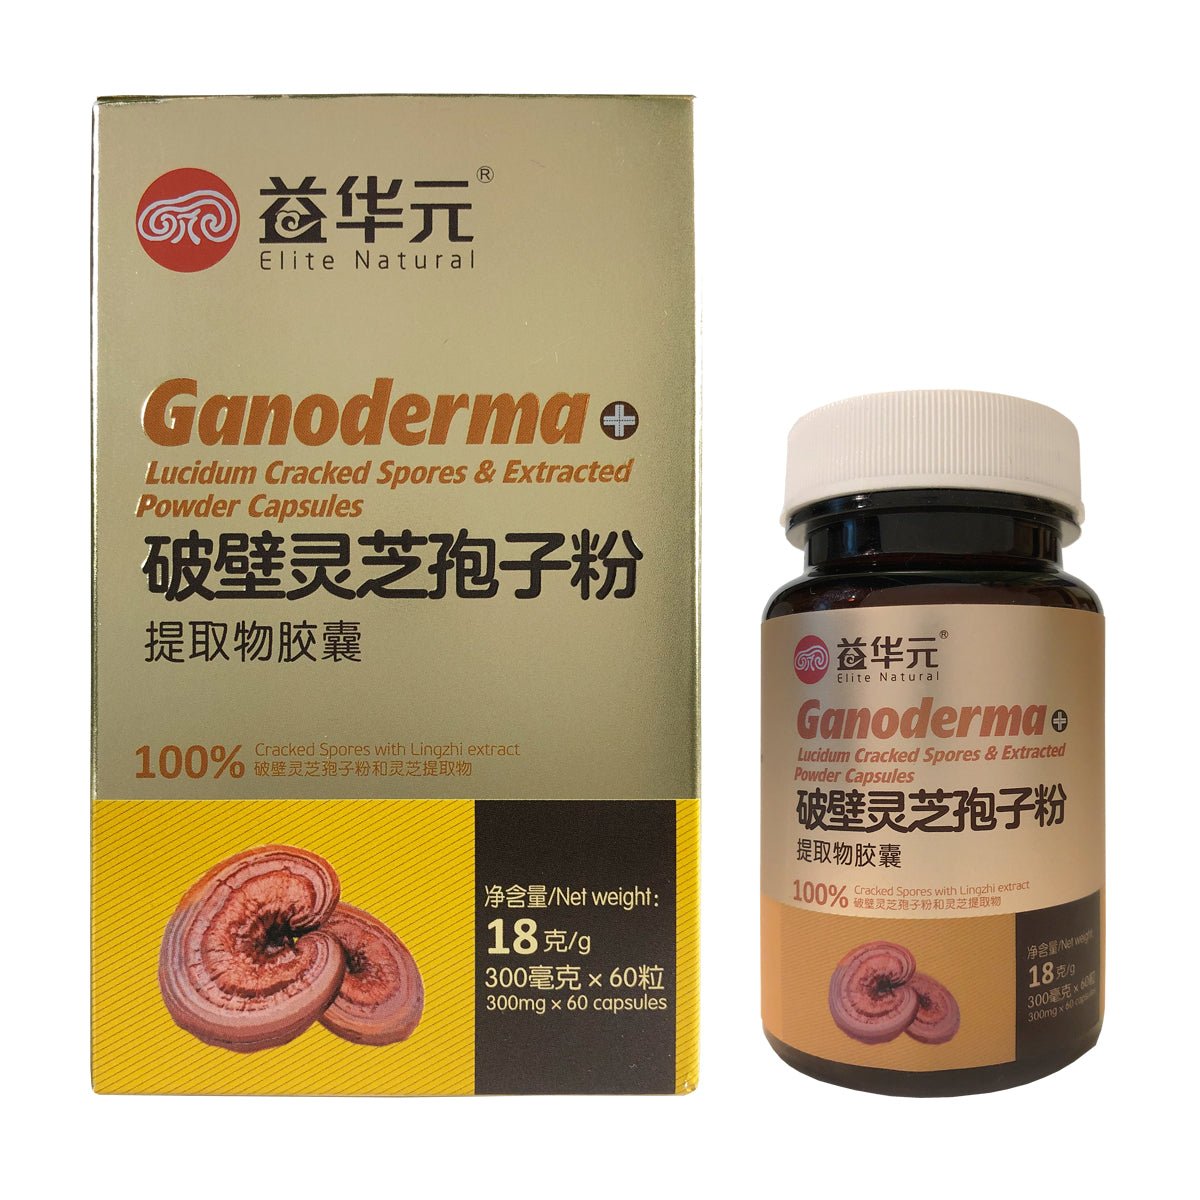 Ganoderma Lucidum crached spores capsule